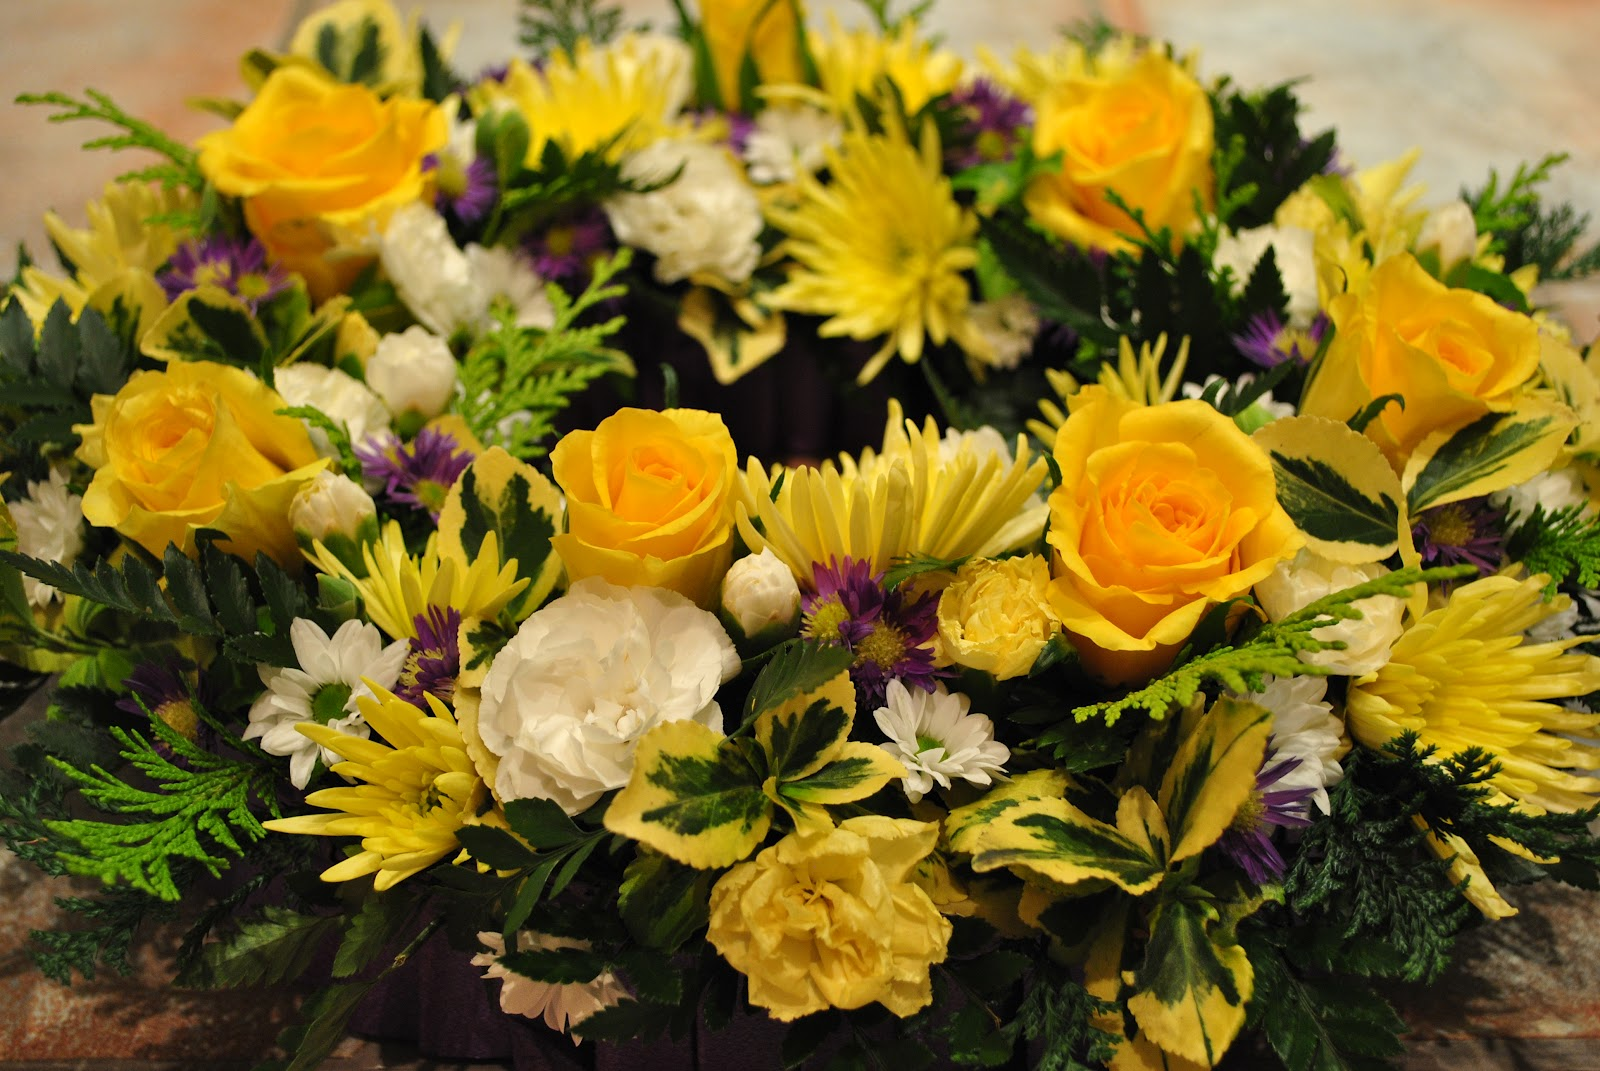 Lucys flower studio november 2011 this is a wreath i did for my grandad roys funeral i used yellow roses spray chrysanths and carnations with white spray chyrsanths and carnations and izmirmasajfo